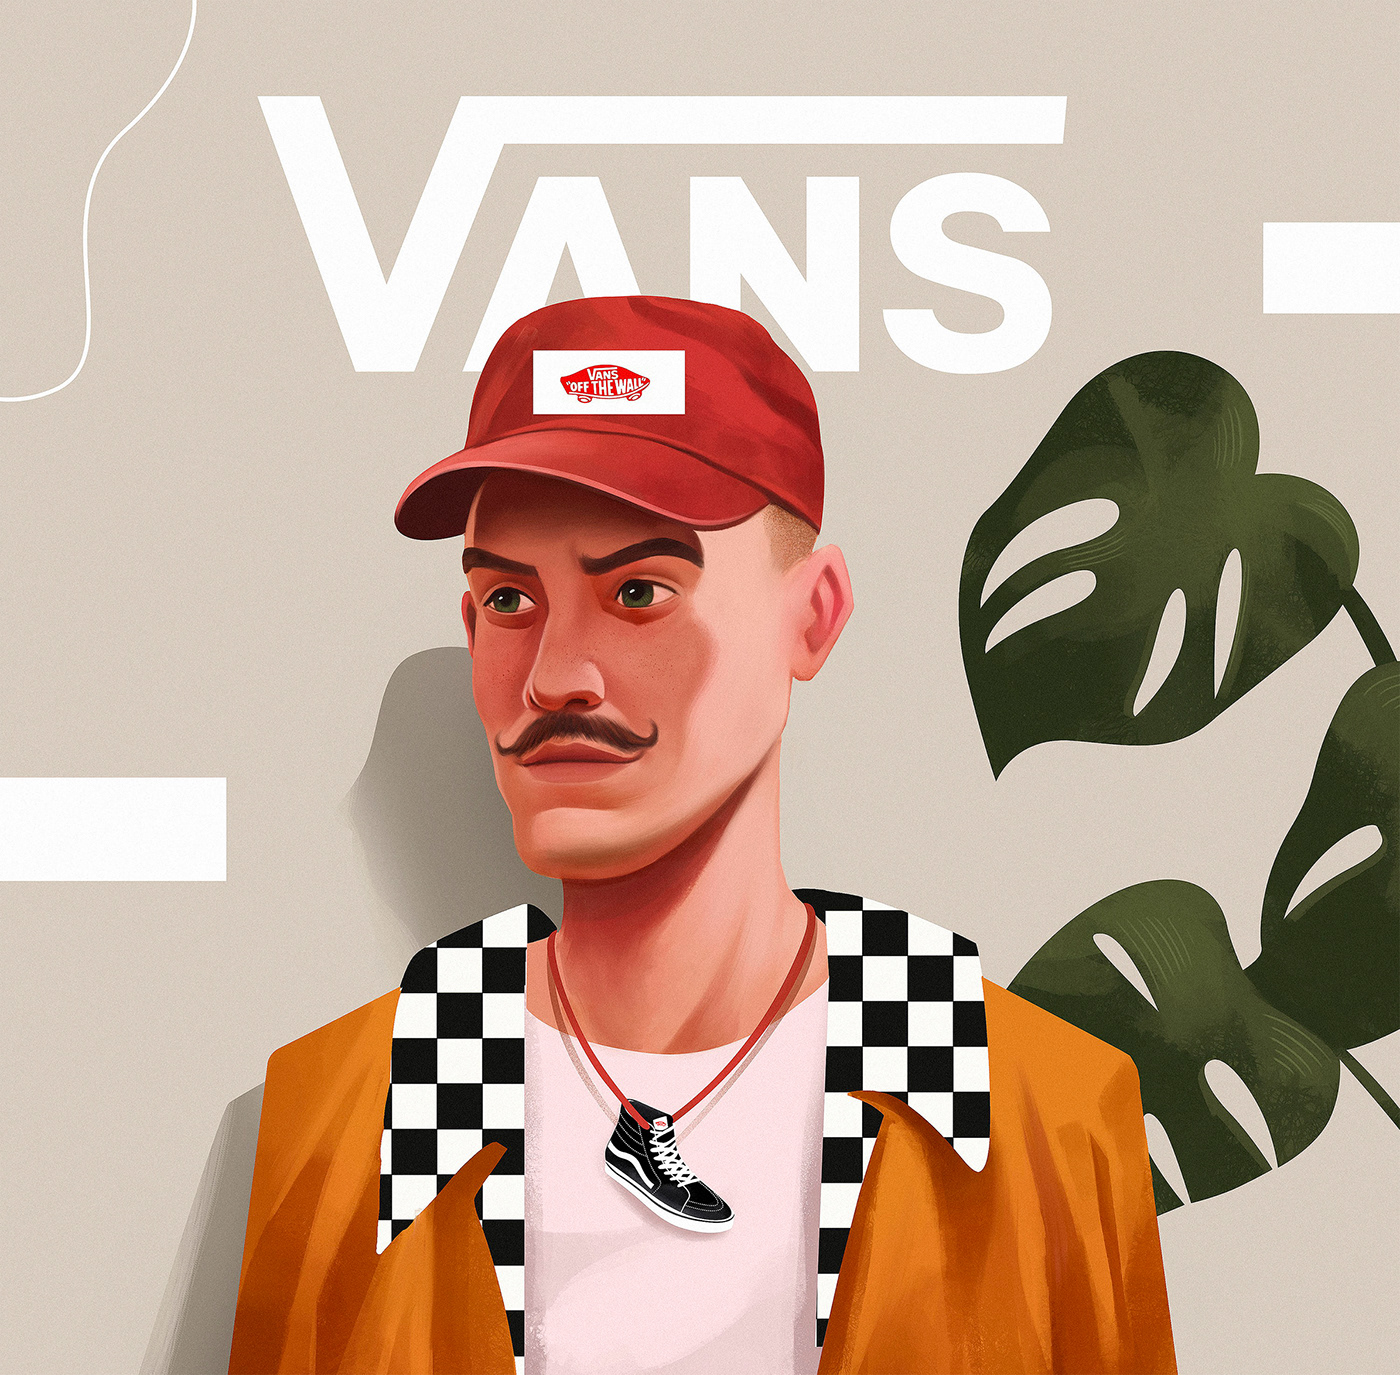 Vans design creative lifestyle Character campaign inspiration brand Illustrator bold colors